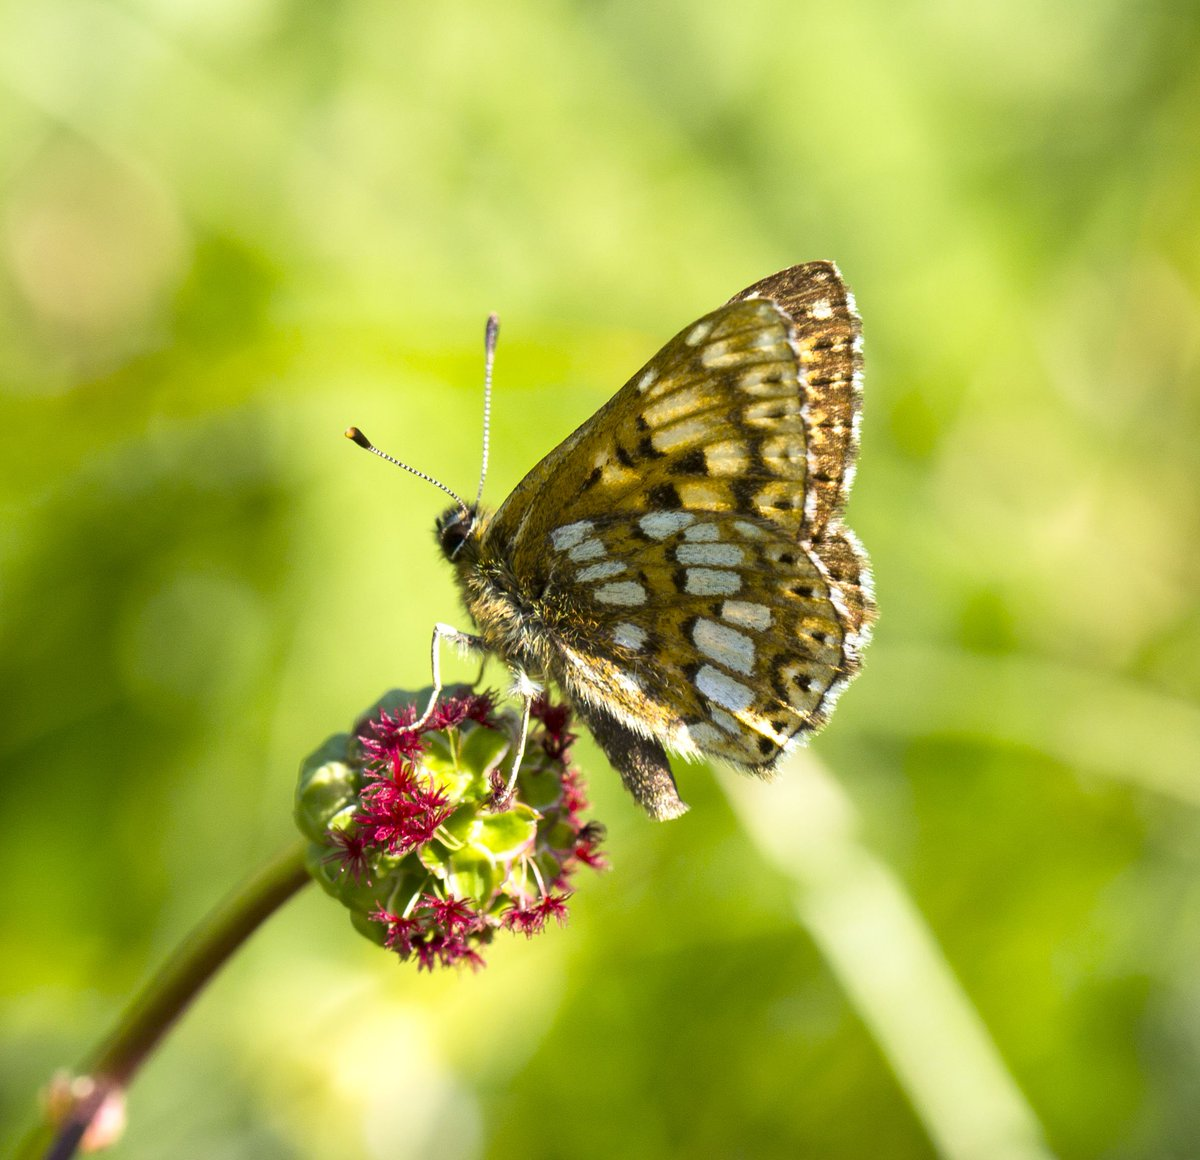 lovely day out near Dunstable,Beds-super views of Duke of Burgundy,Bro...